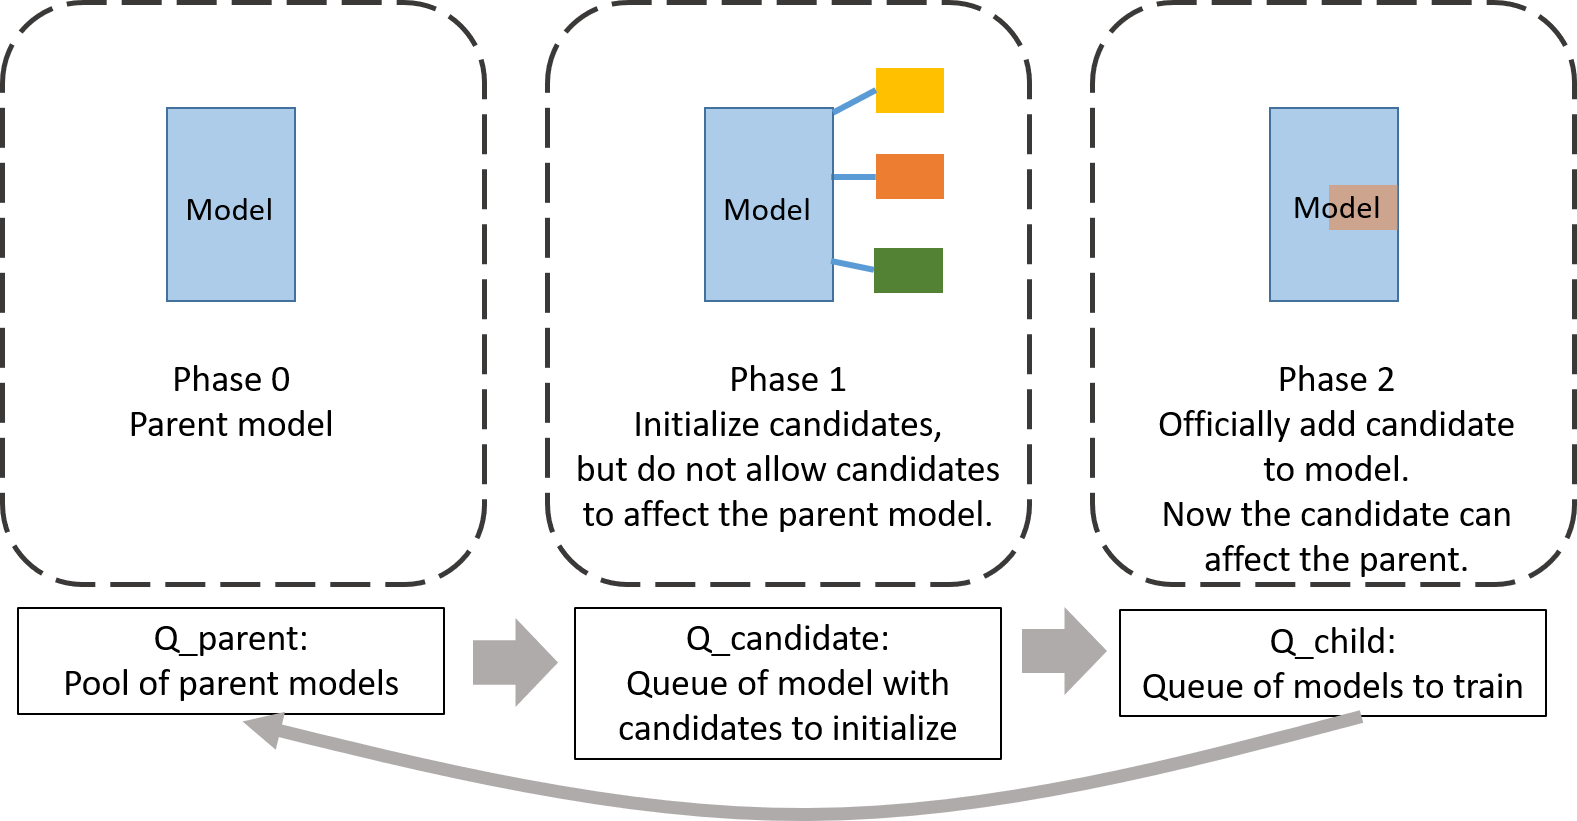 Figure 1: Petridish, a neural architecture search algorithm that grows a nominal seed model during search by opportunistically adding layers as needed, comprises three phases.